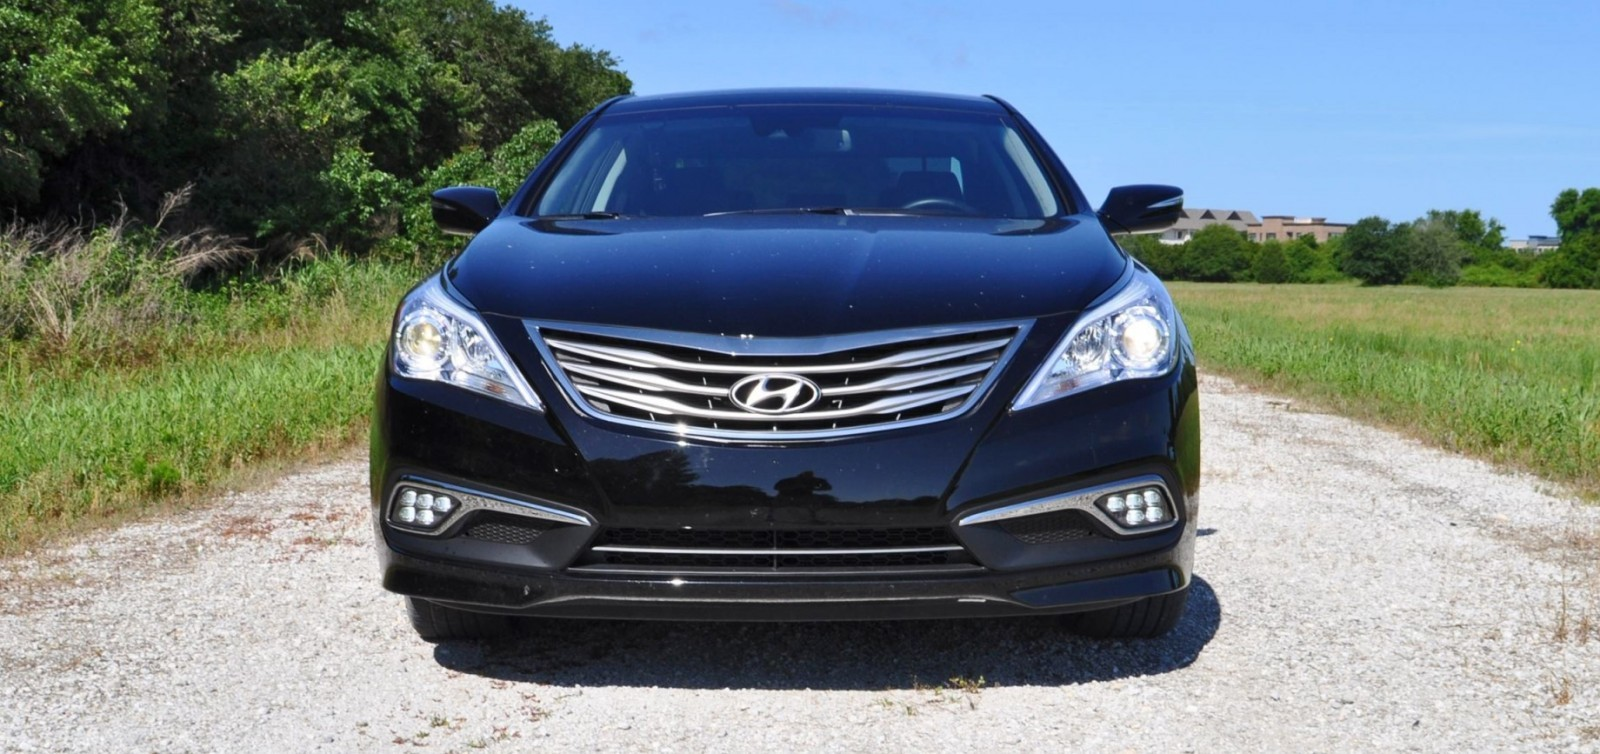 Road Test Review - 2015 Hyundai AZERA Limited 17